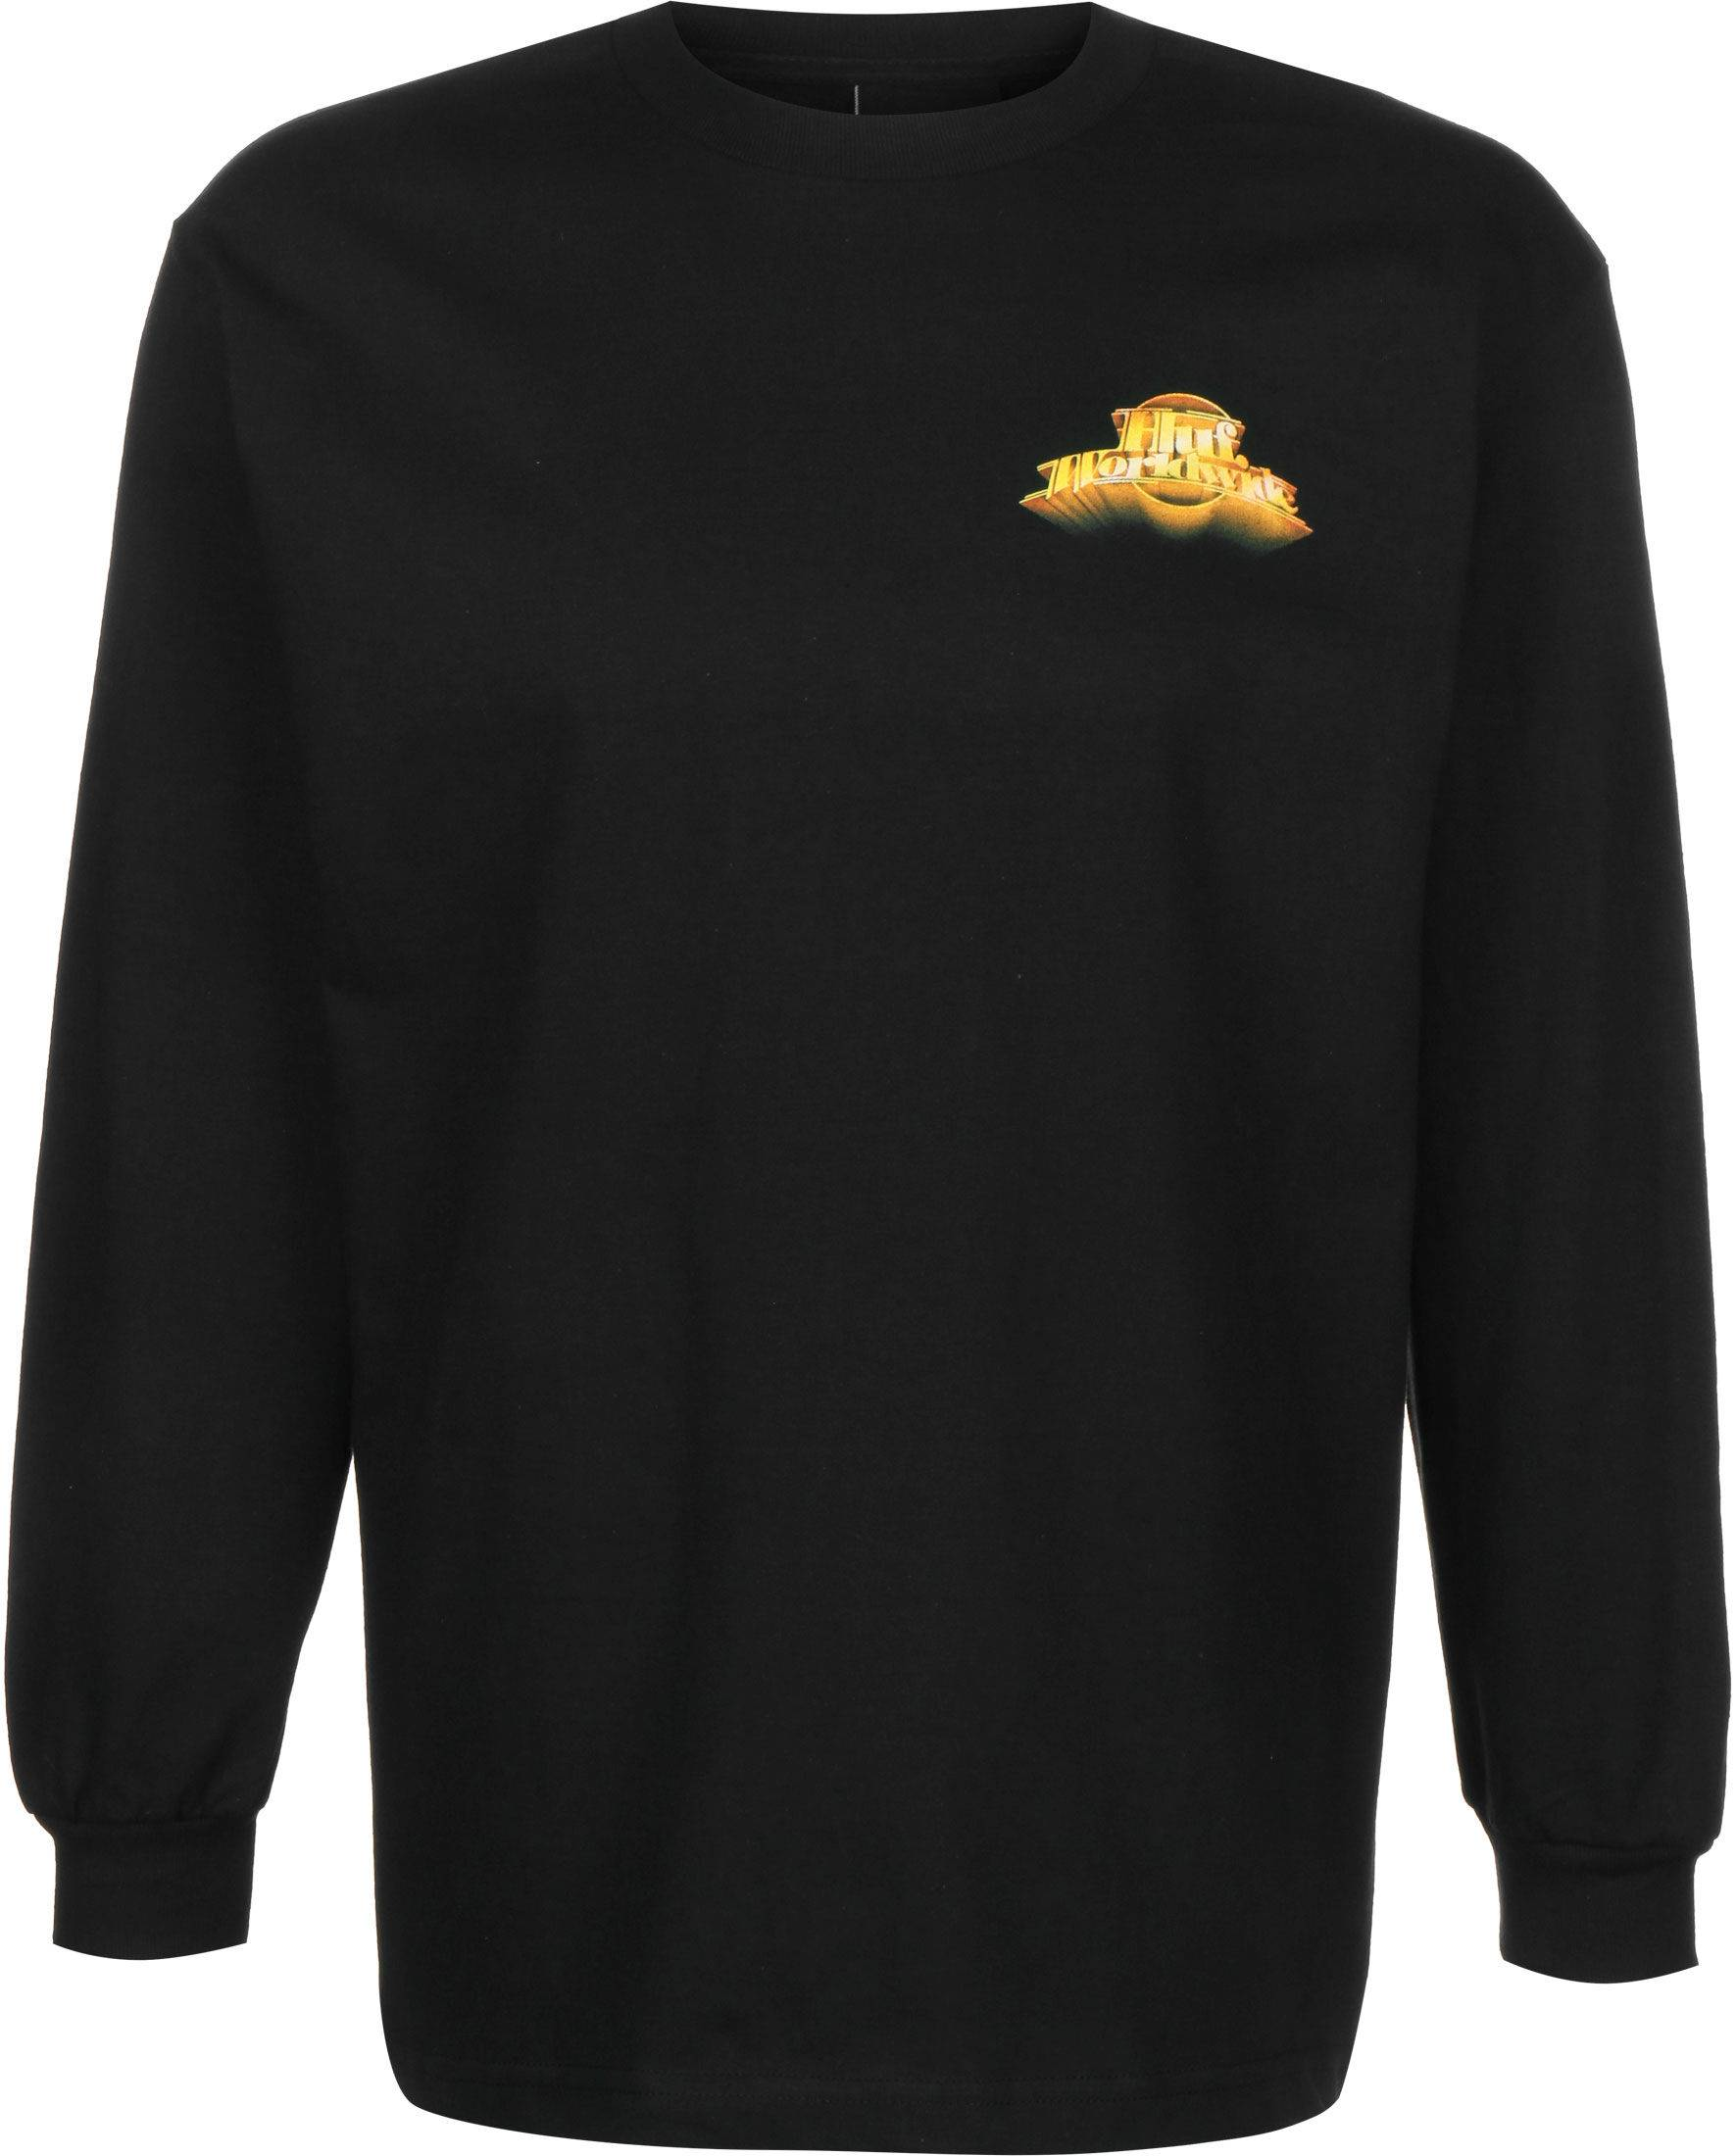 HUF Greatest Hits, taille S, homme, noir